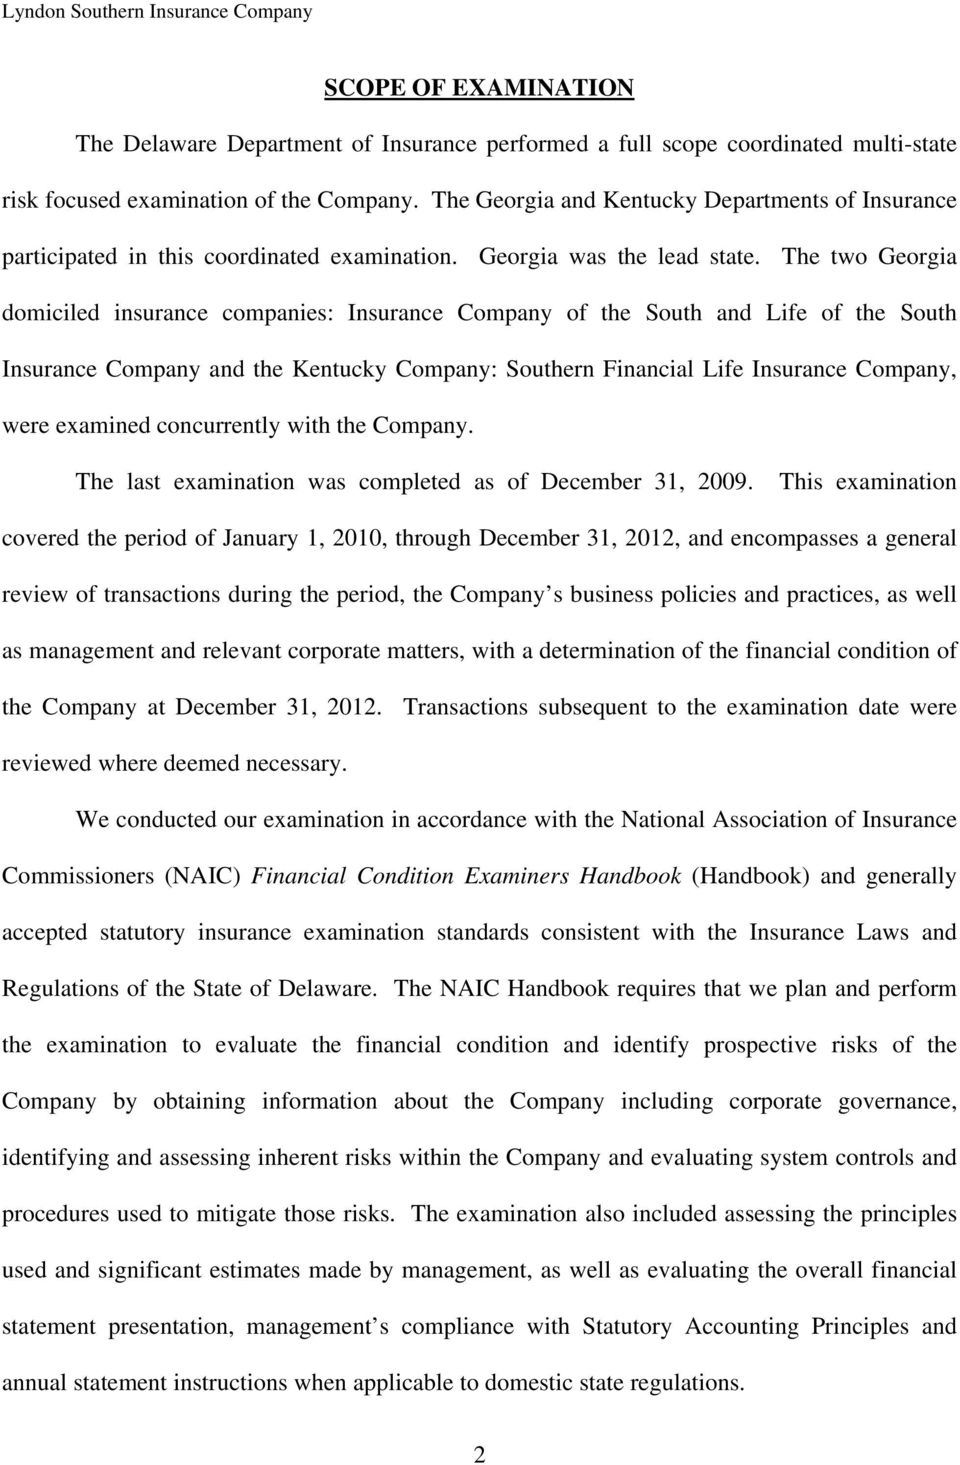 The two Georgia domiciled insurance companies: Insurance Company of the South and Life of the South Insurance Company and the Kentucky Company: Southern Financial Life Insurance Company, were